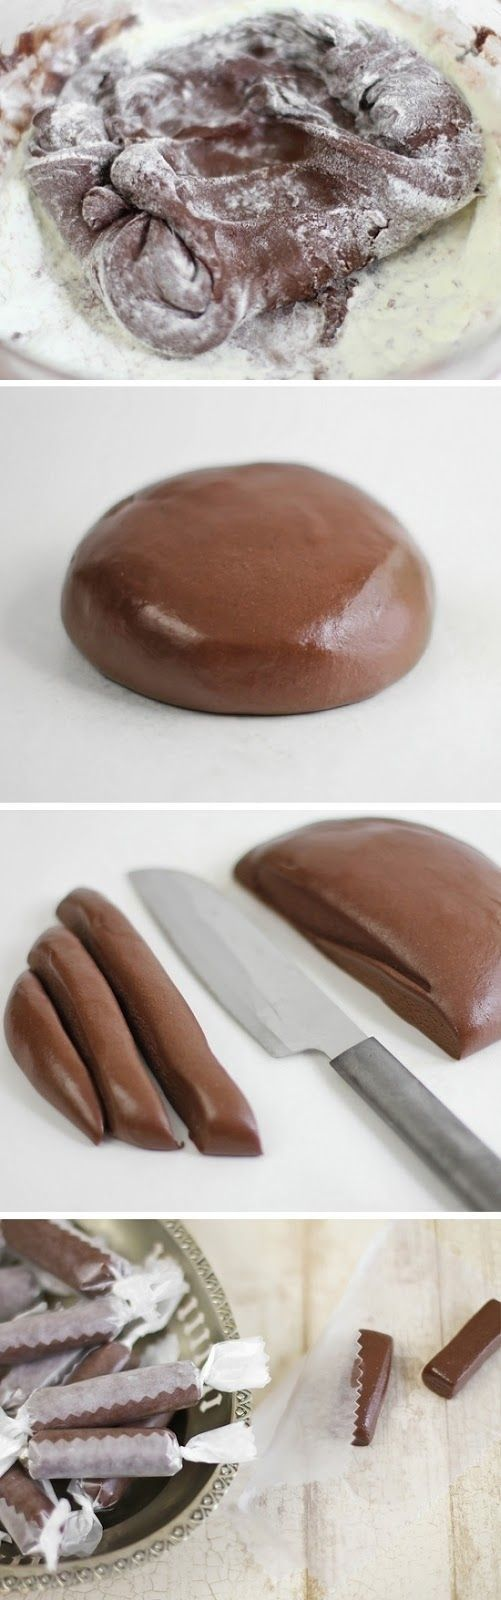 Homemade Tootsie Rolls.  Can't wait to try this!